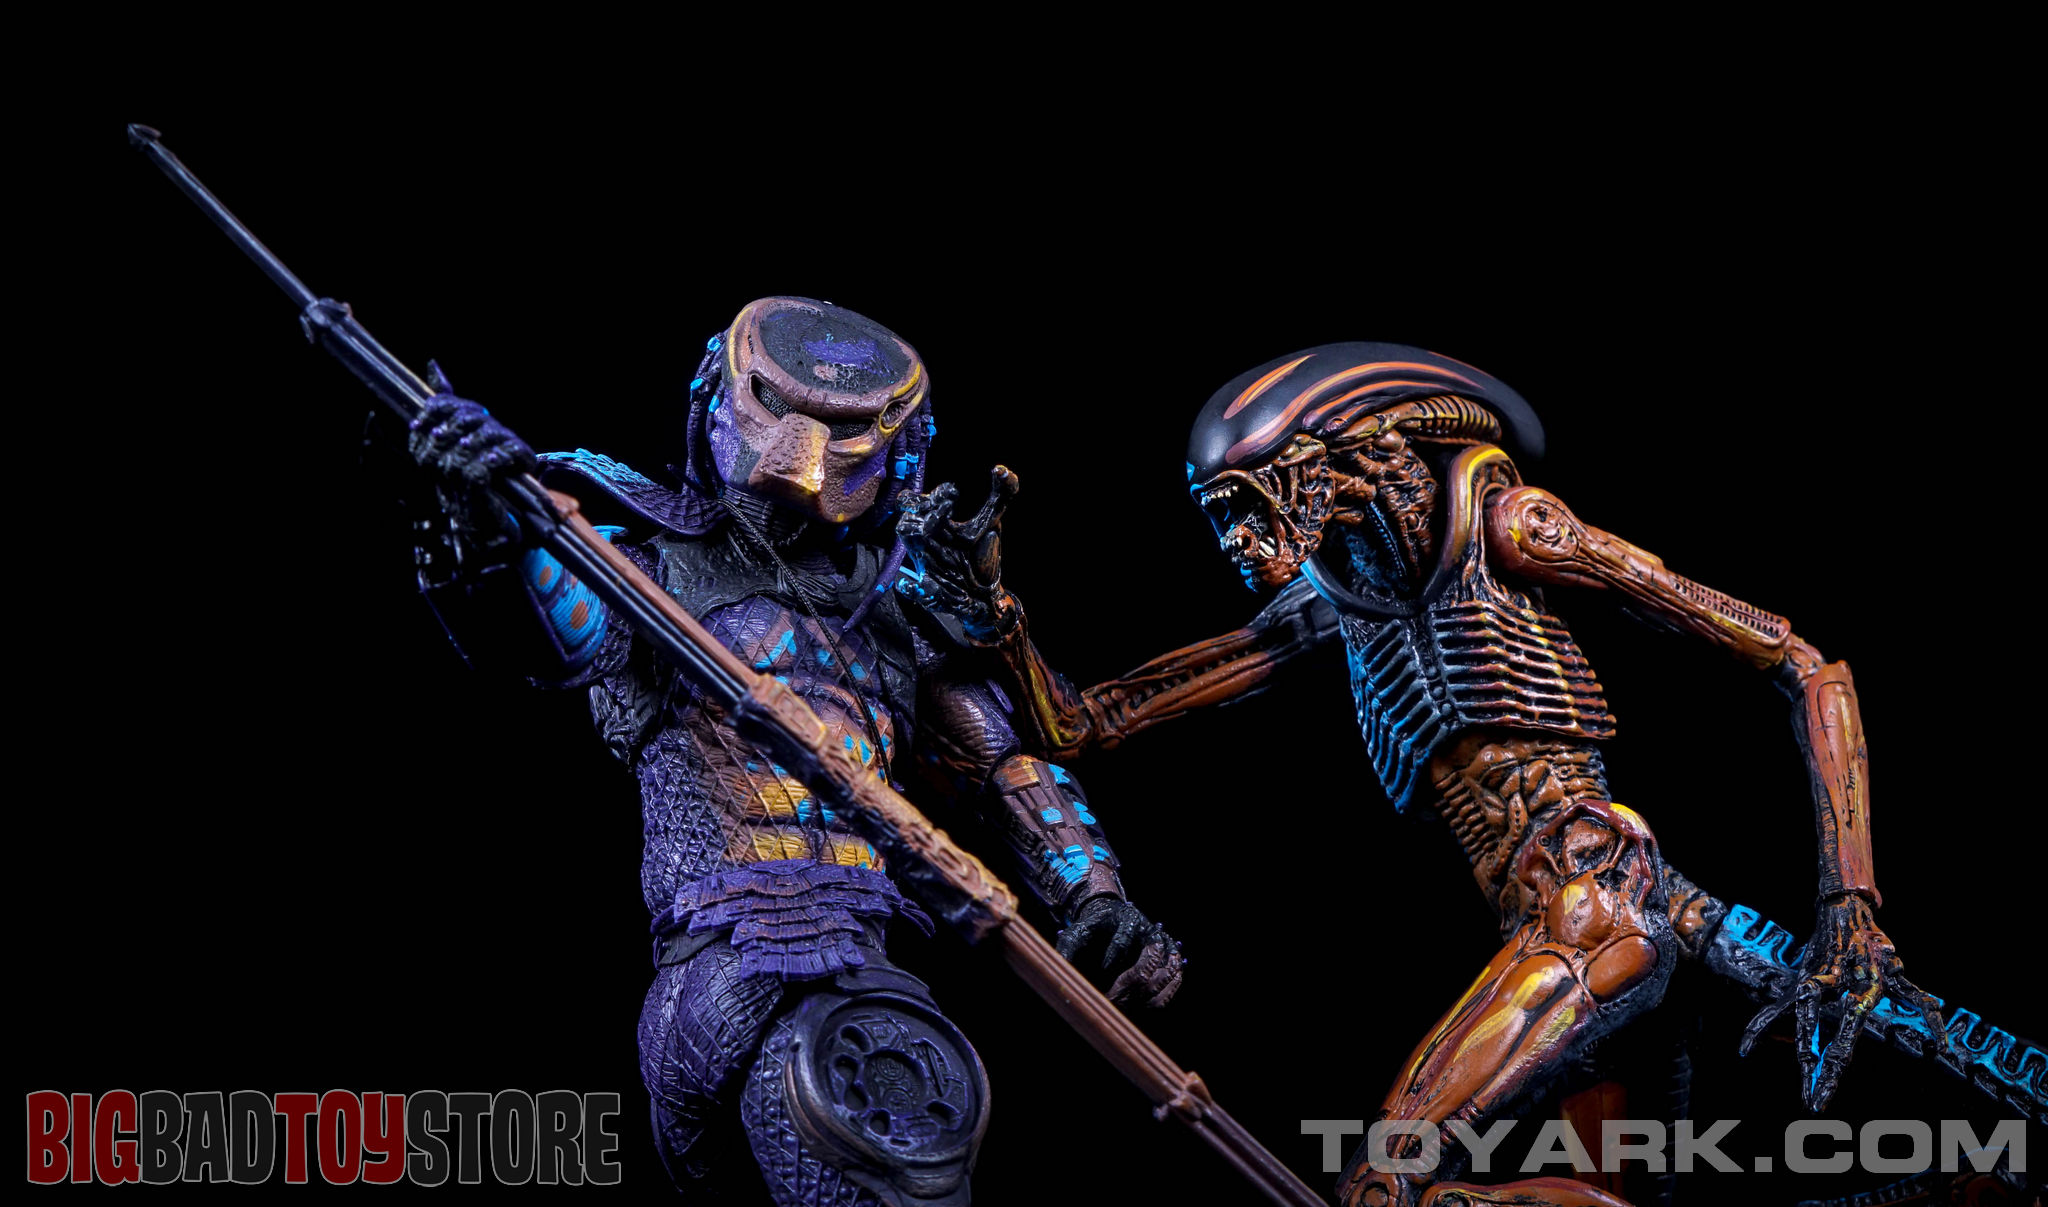 http://news.toyark.com/wp-content/uploads/sites/4/2015/06/NECA-NES-Dog-Alien-055.jpg